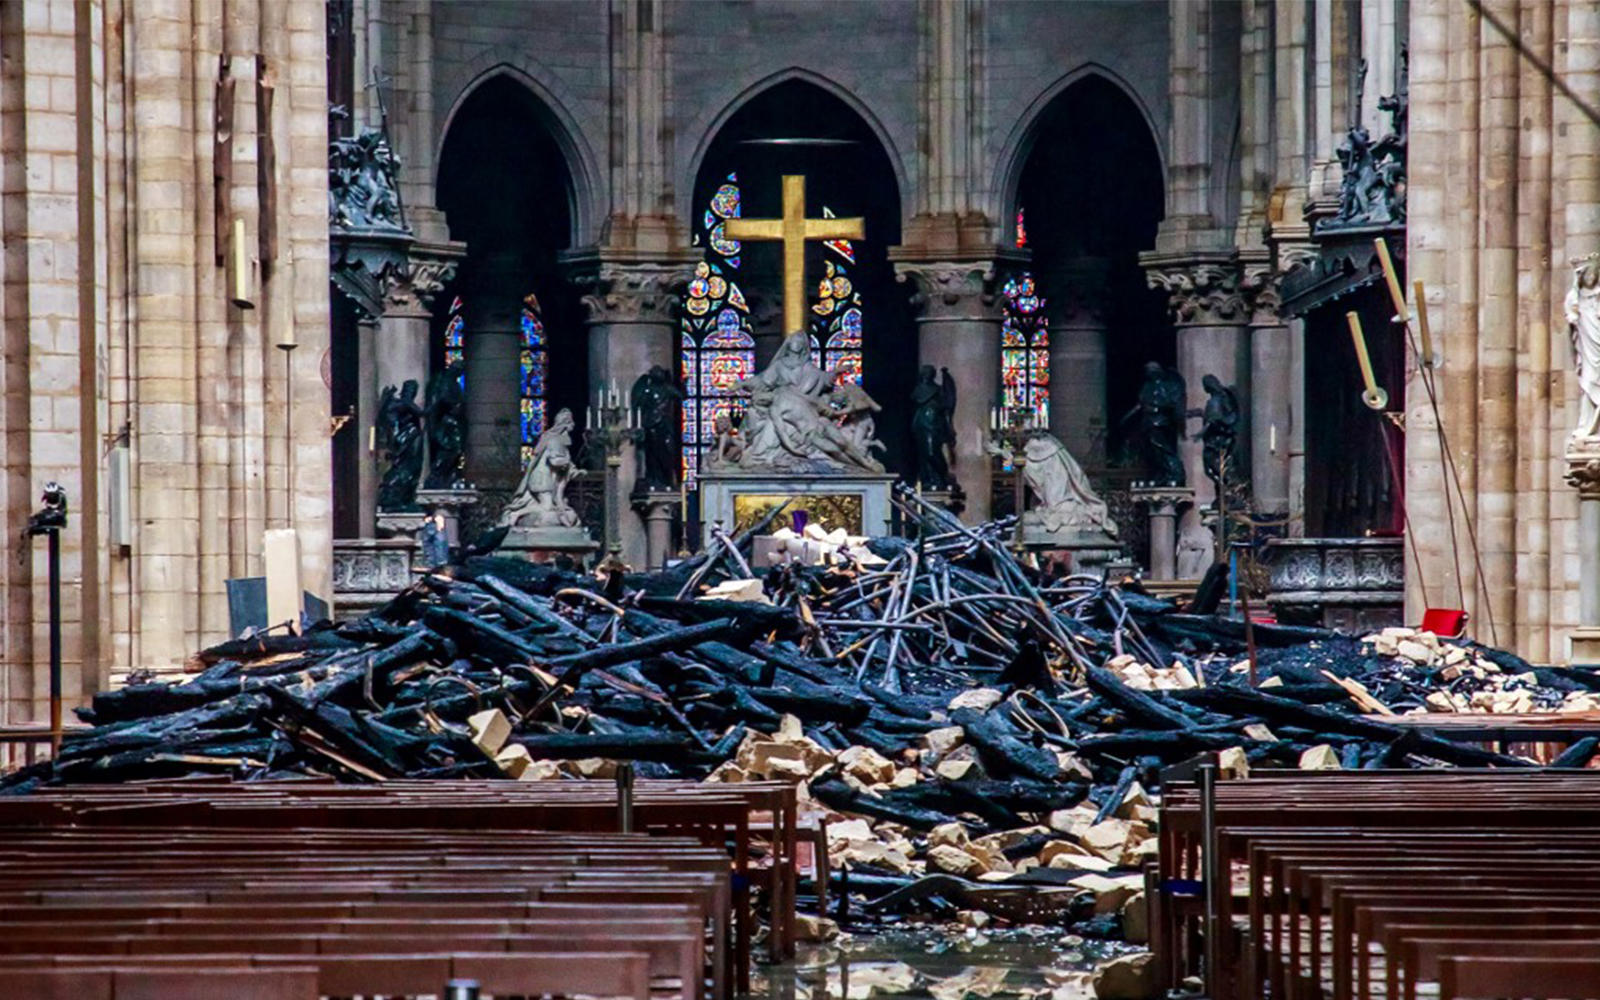 Flames out and treasures intact, but Notre Dame faces long recovery